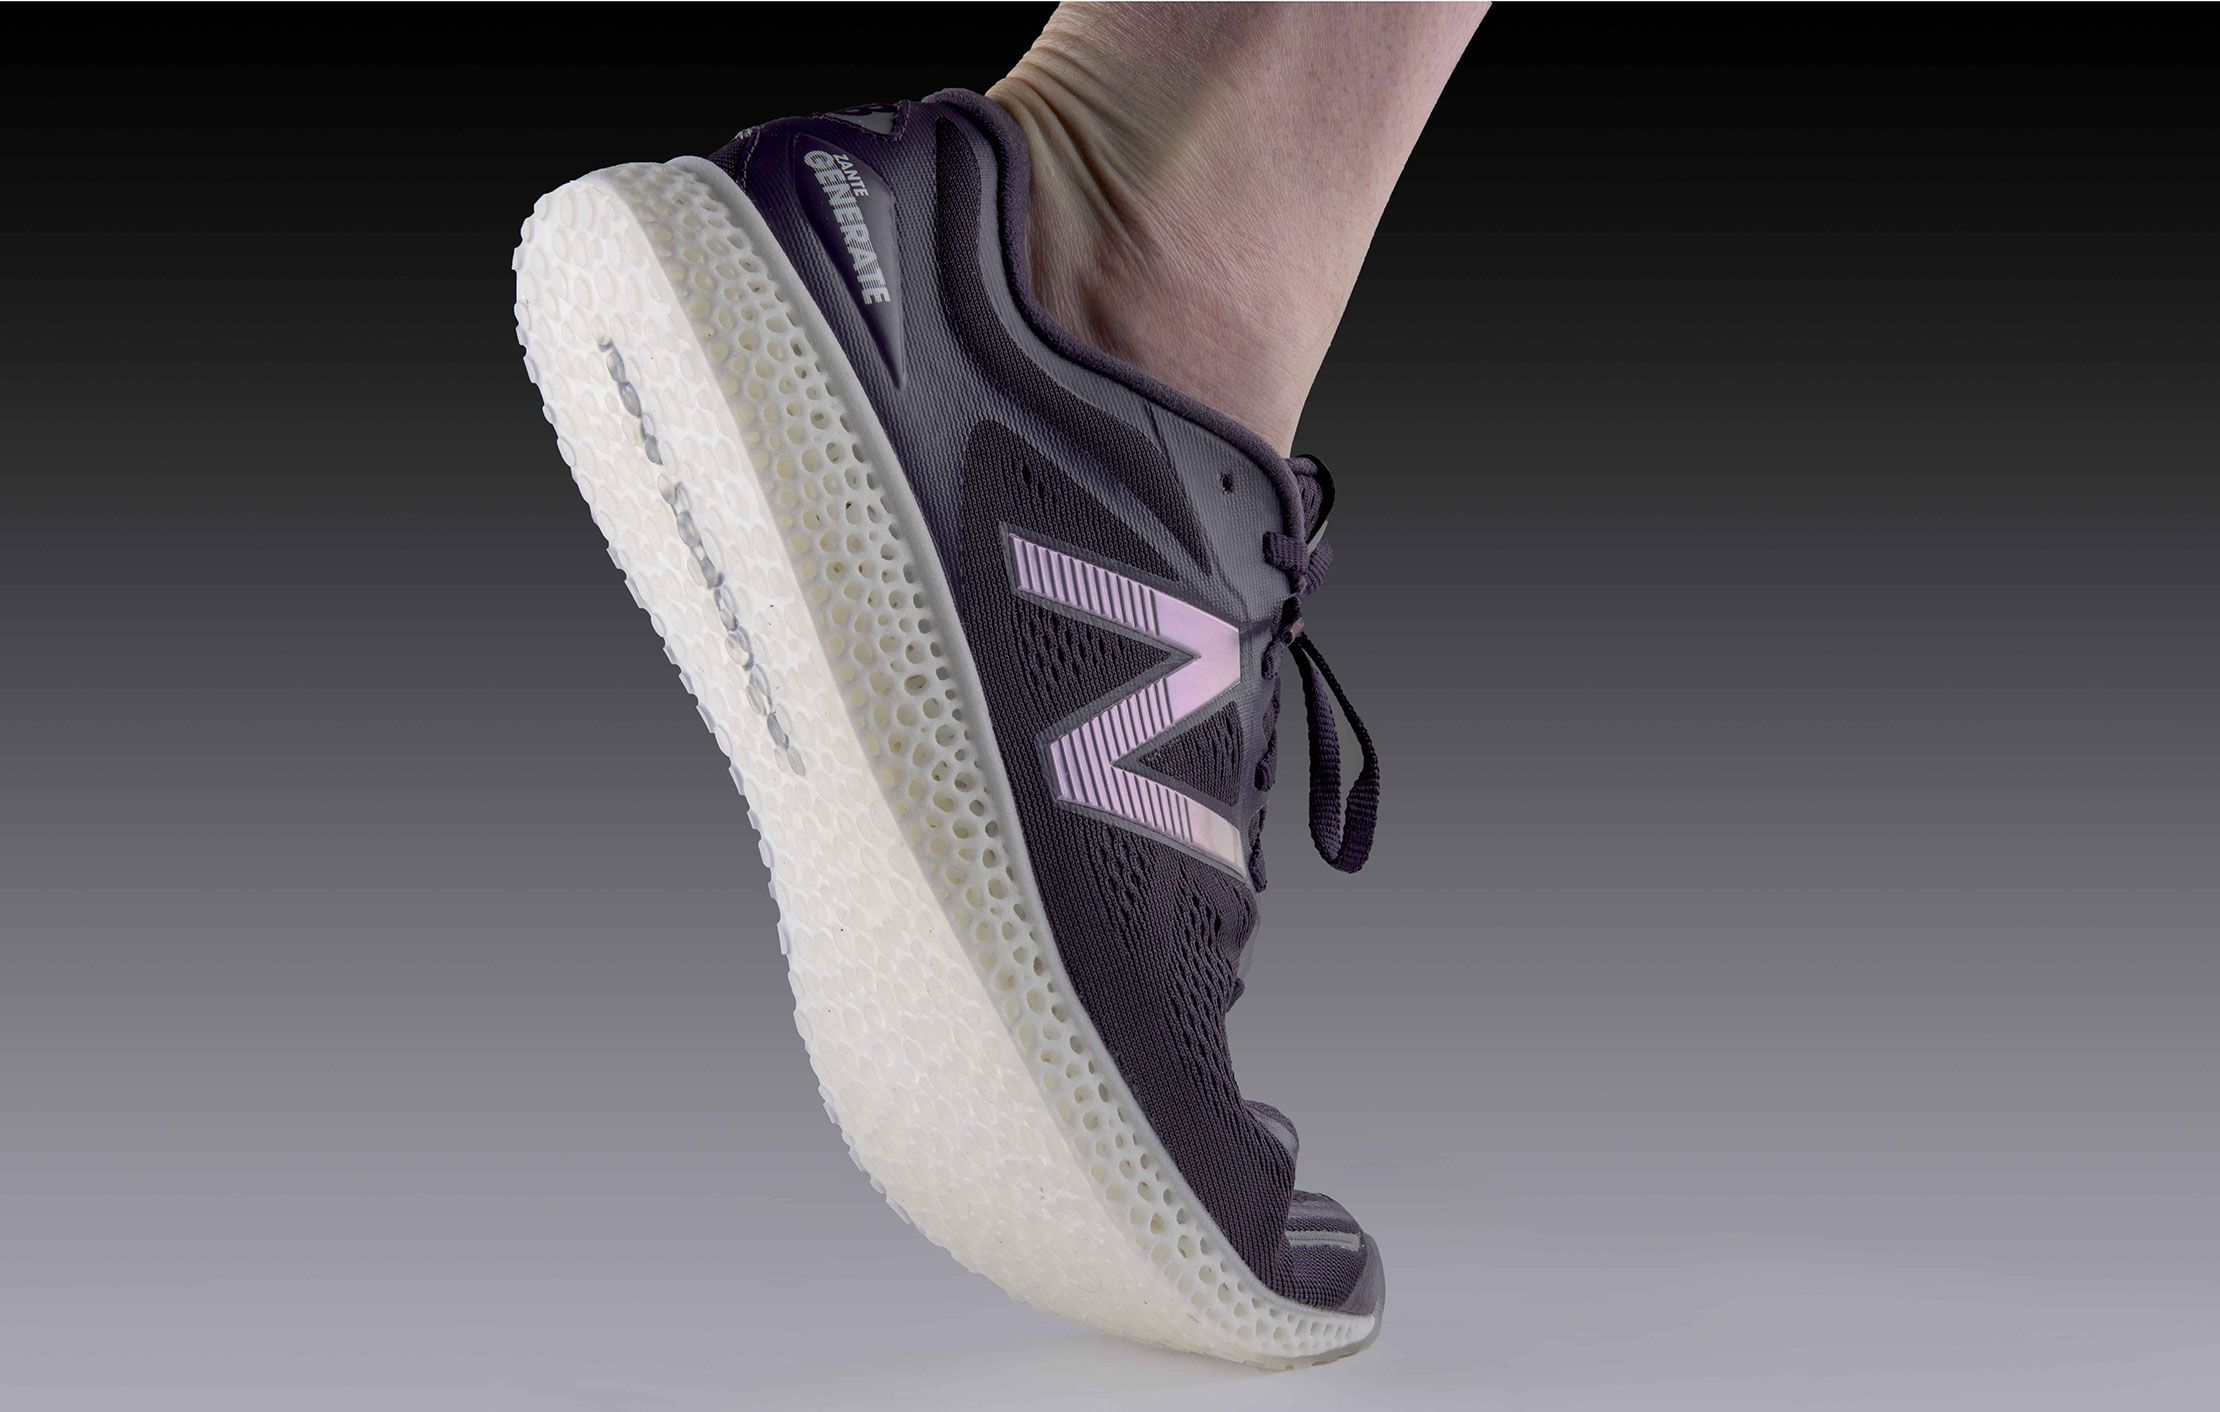 New Balance Wins Race for 3D Printed Running Shoe